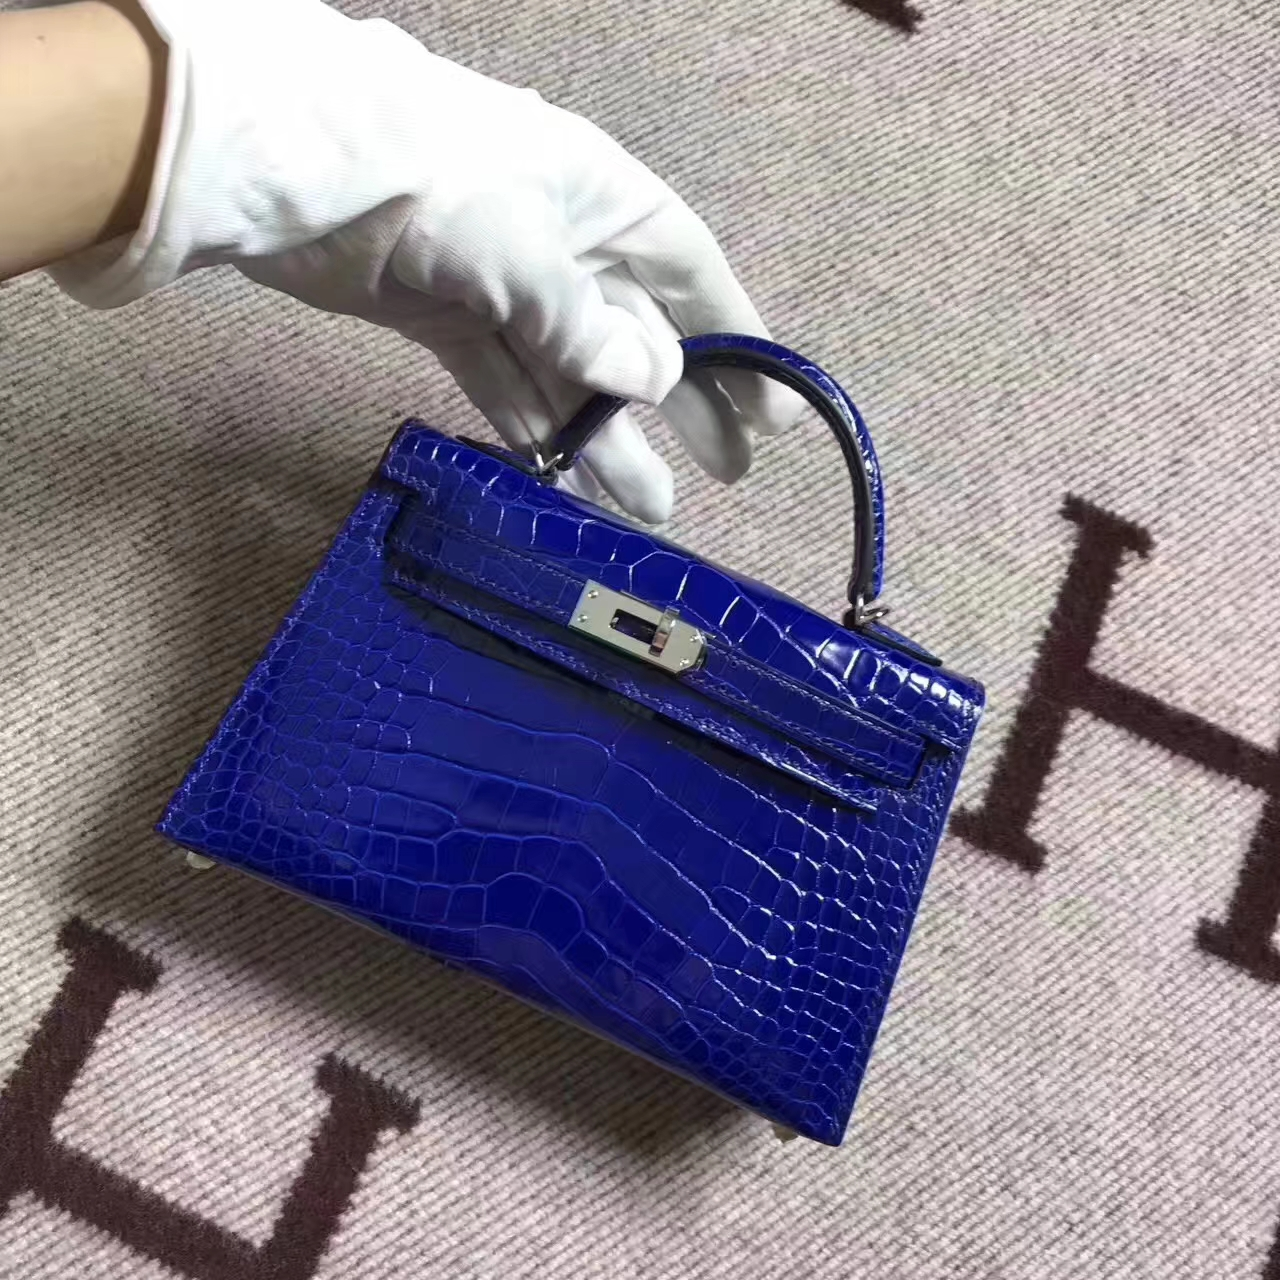 Hot Sale Hermes 7T Blue Electric Crocodile Shiny Leather Minikelly-2 Clutch Bag